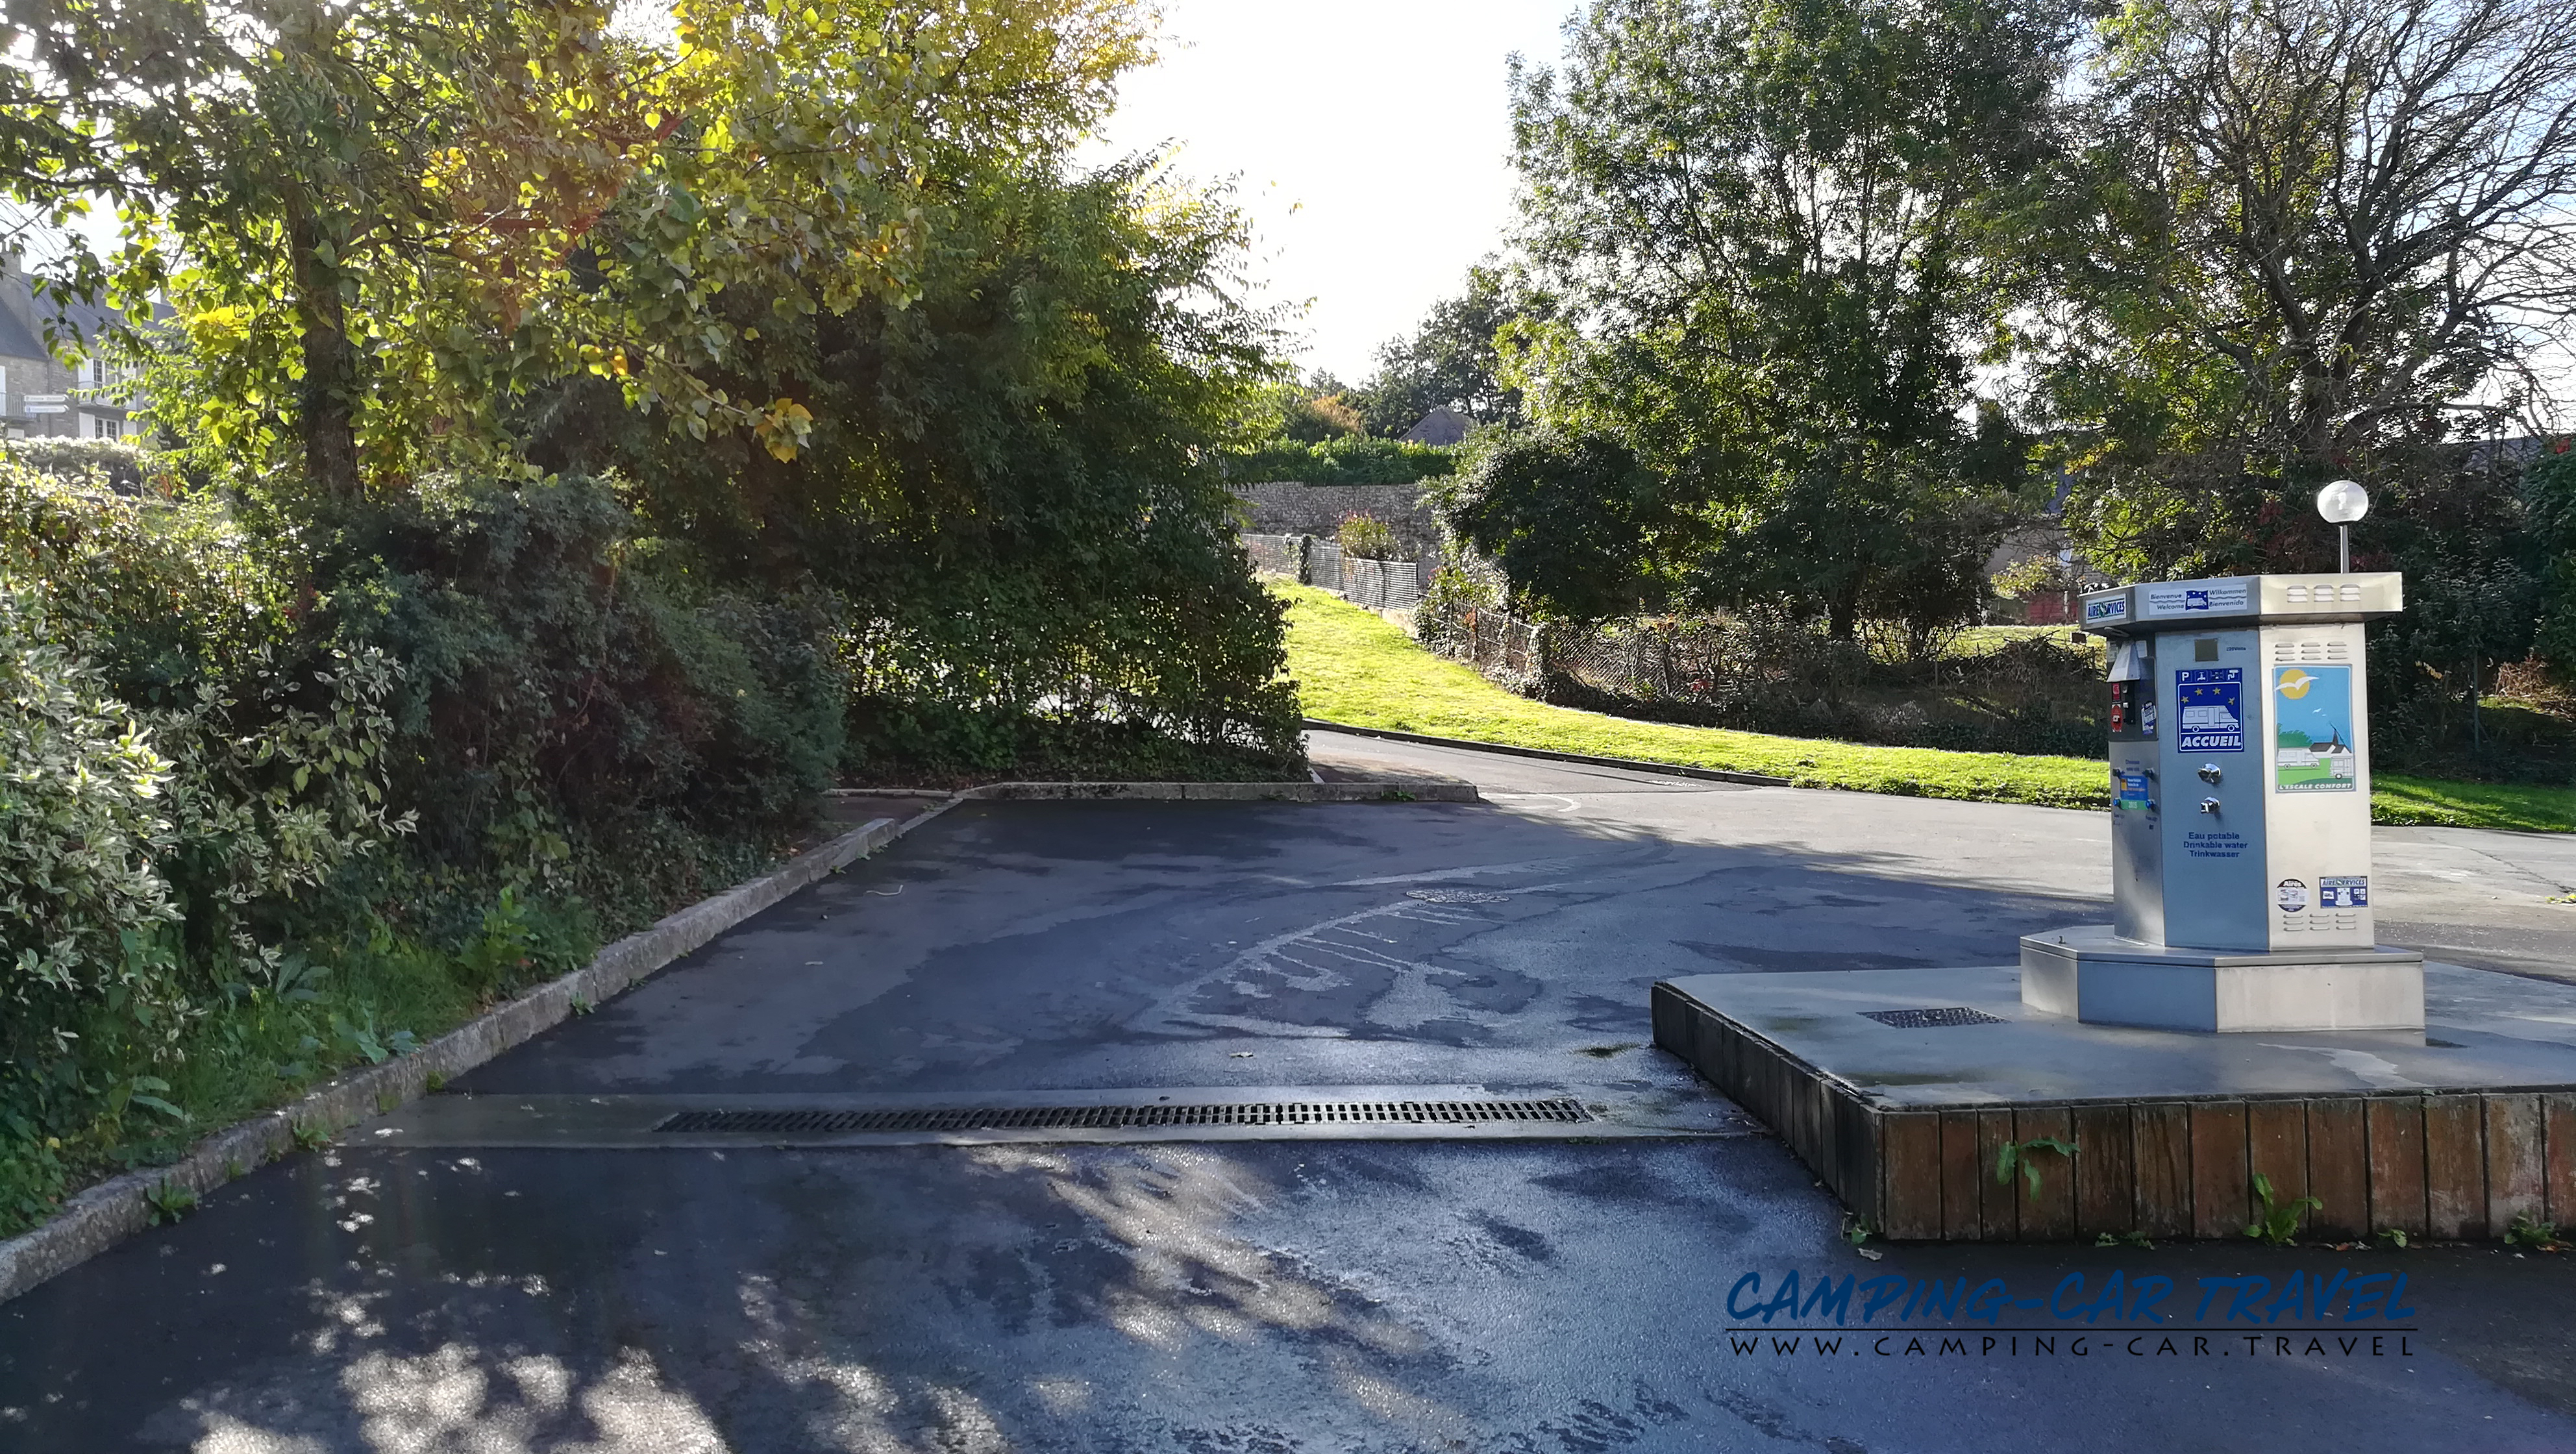 aire services camping car Avranches Manche Normandie